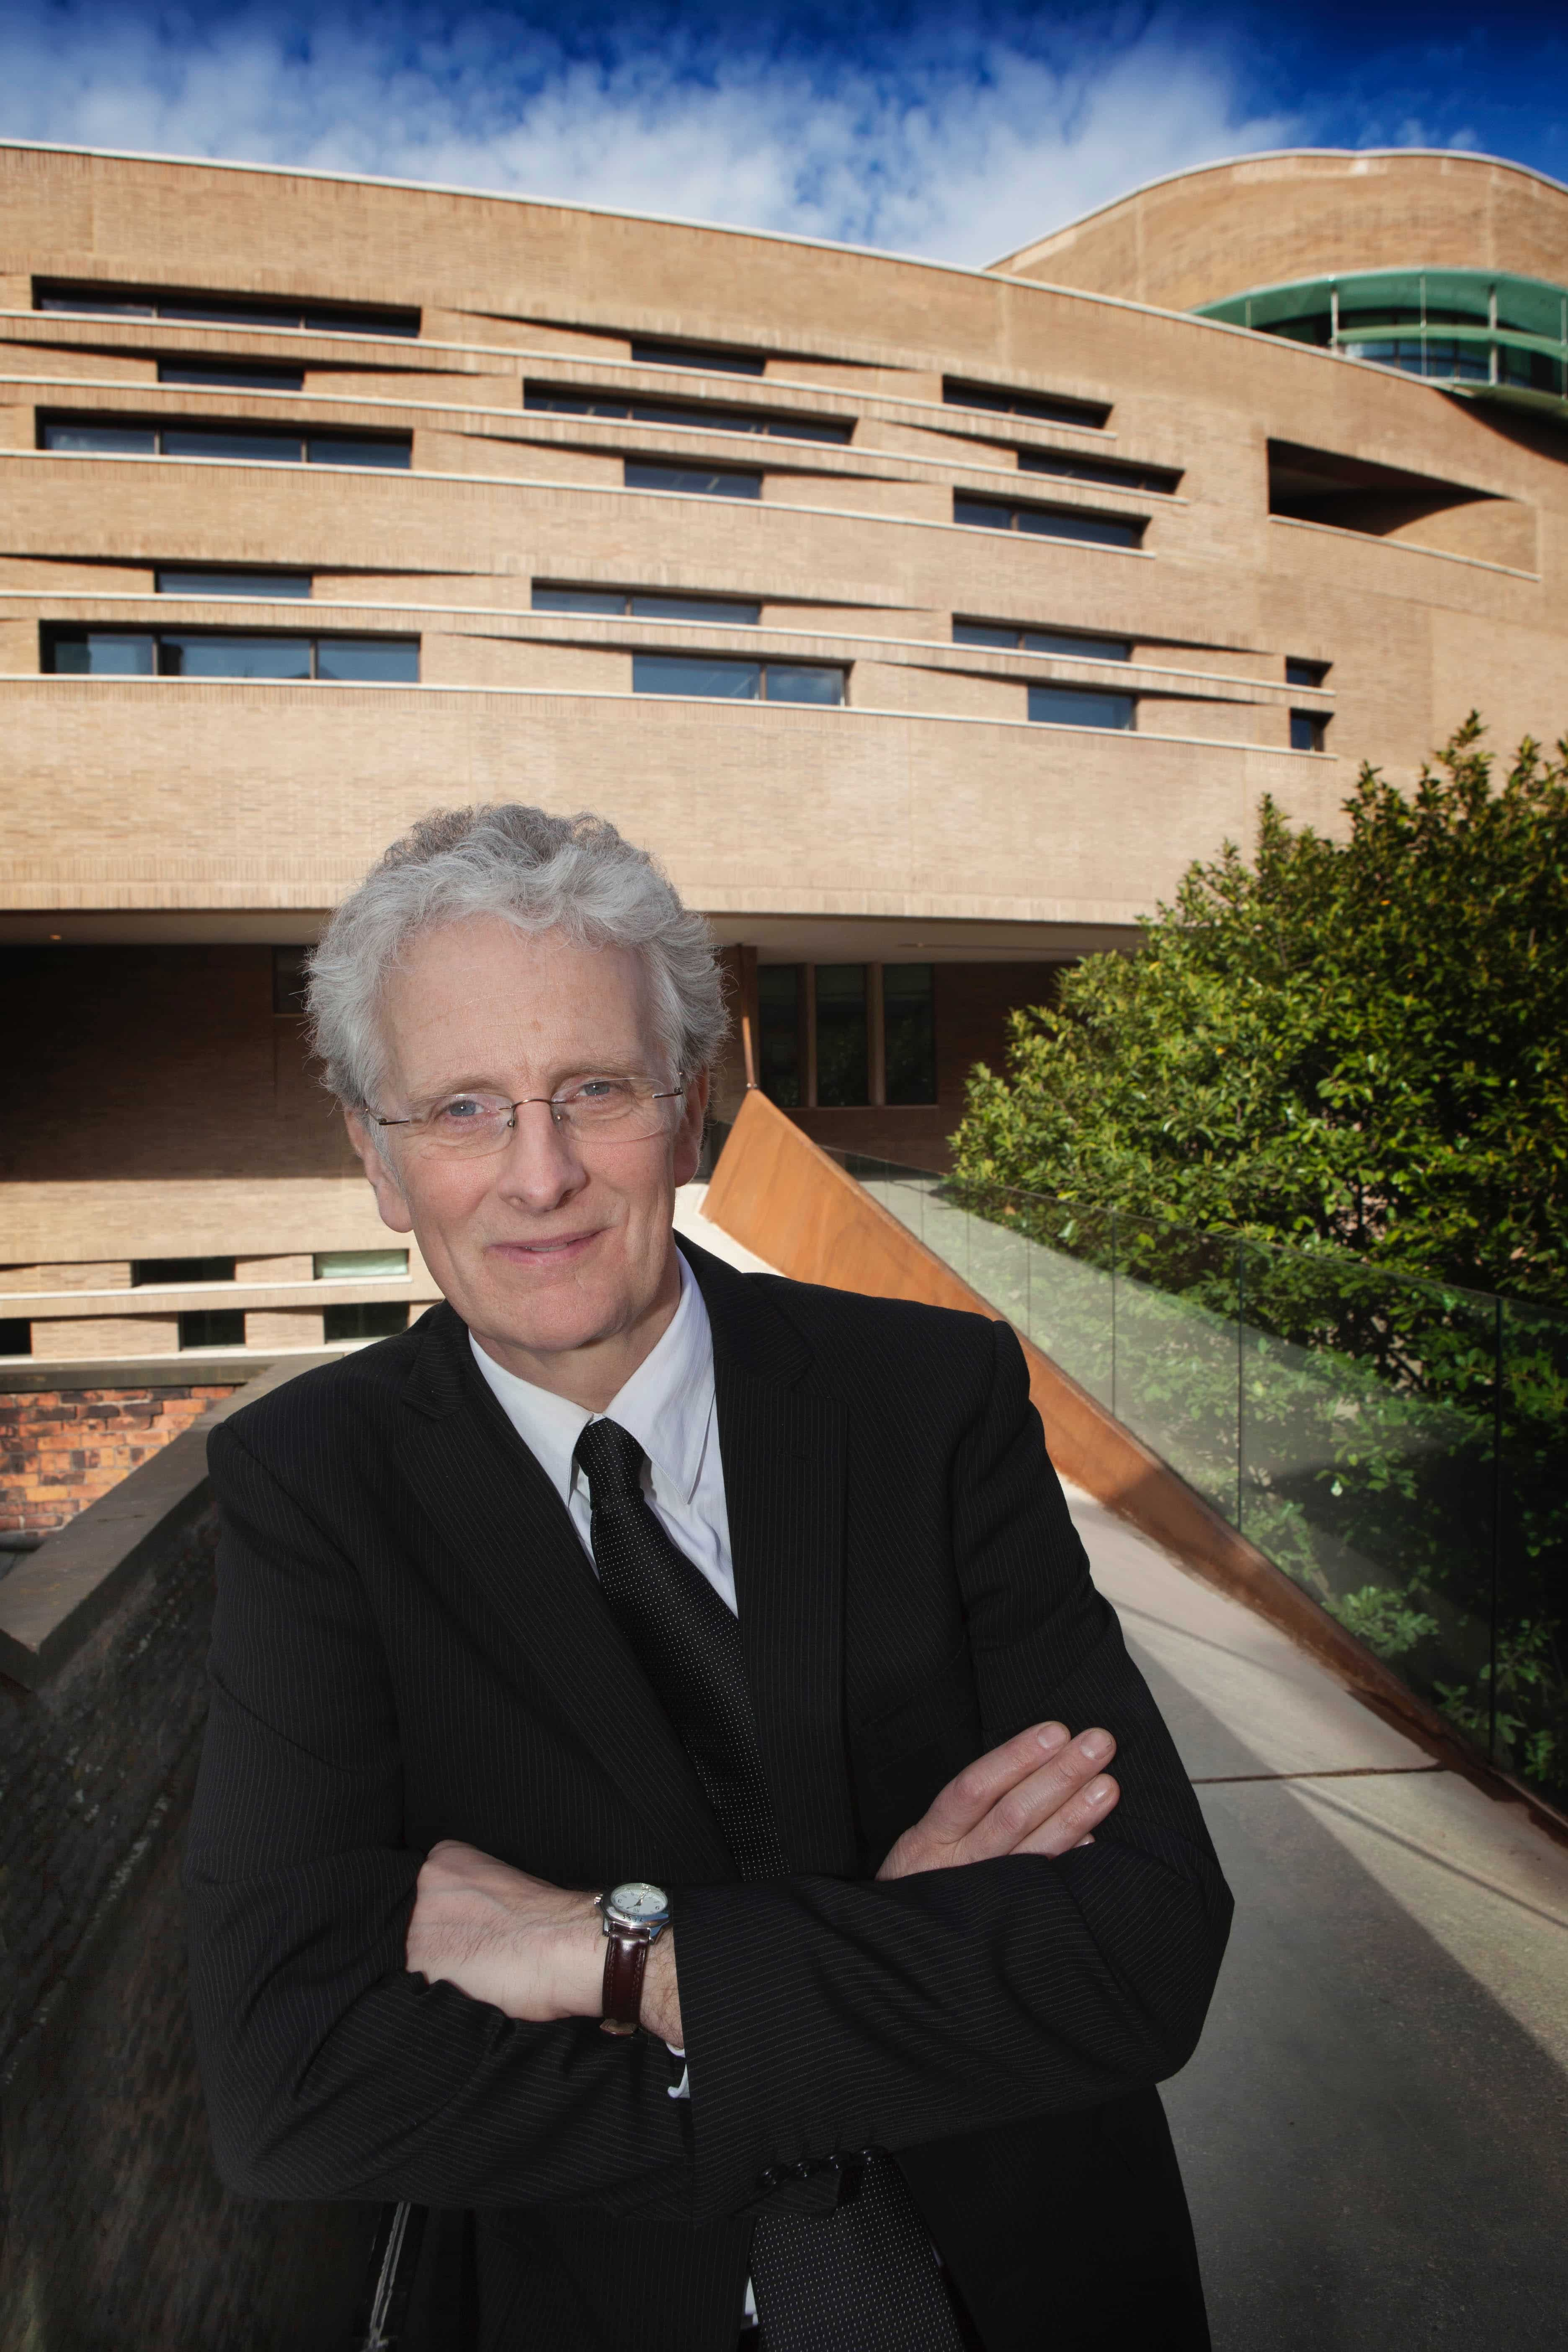 Just in: Chetham's head of music steps down